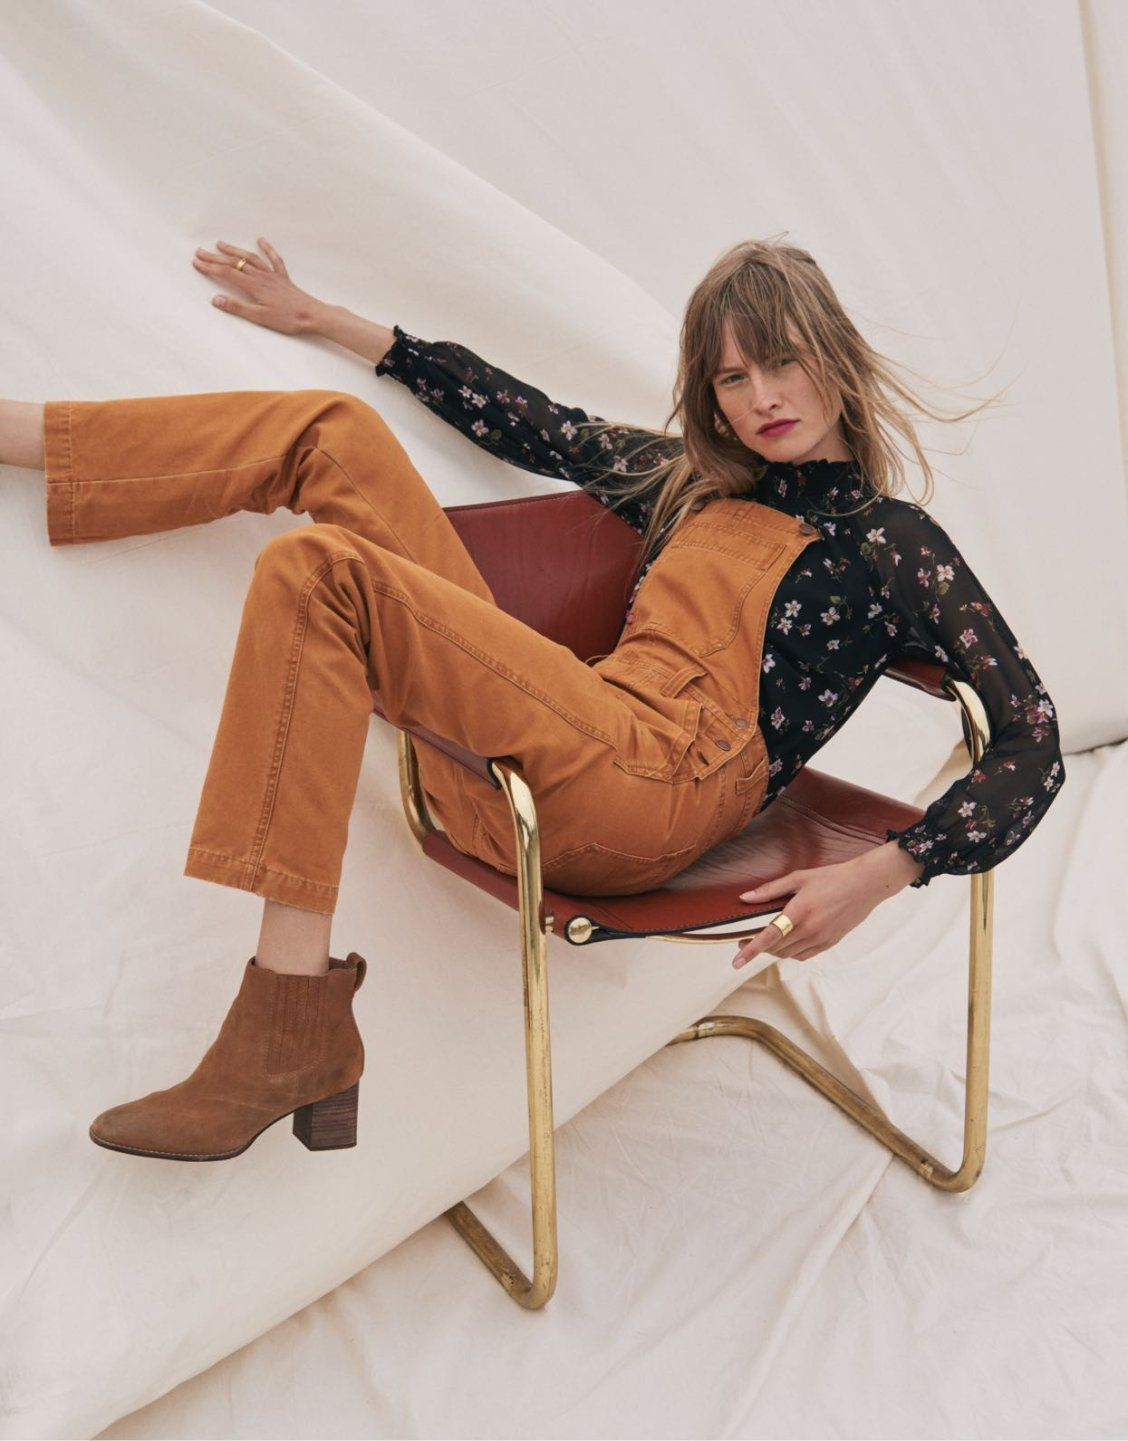 x dickies straight leg overalls with images madewell on dickies coveralls id=70619